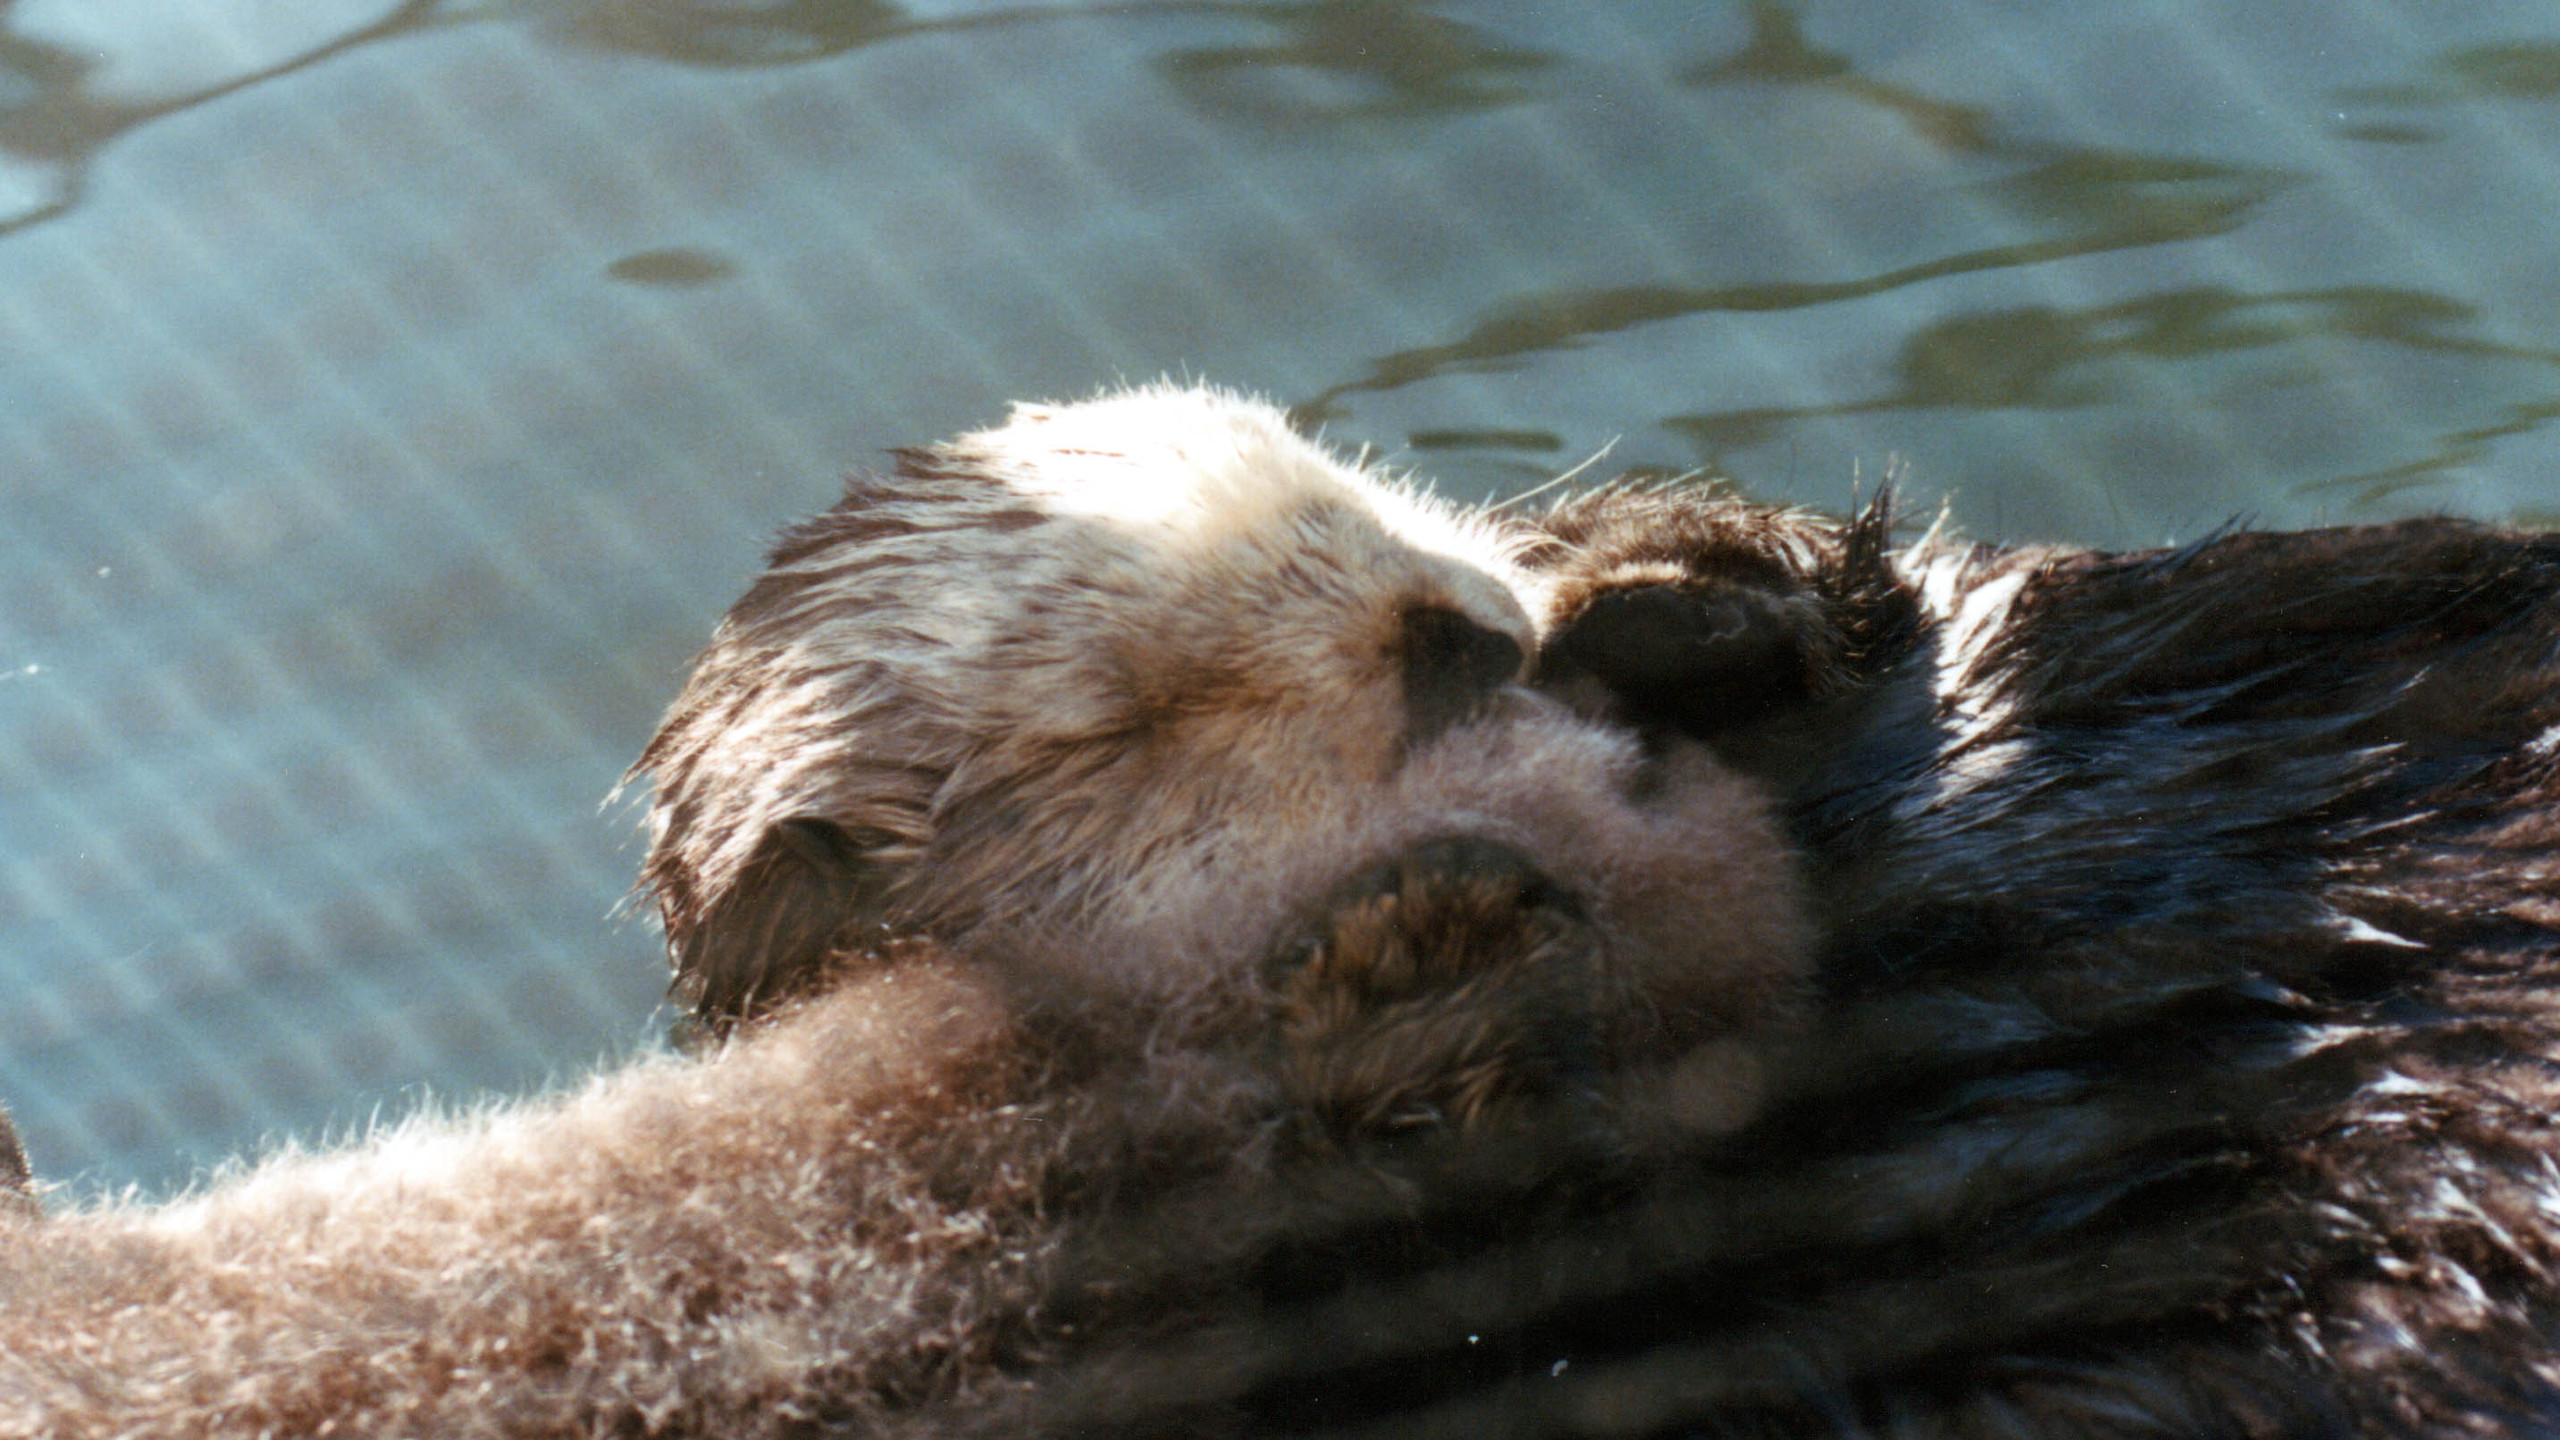 This mother otter spent nearly every waking hour tending her pup, which was born at the Sea Otter Rescue Center, and slept holding its nose next to hers, to keep it above the water. This mother cared for her pup this way every day for weeks, until the pup was taken away from her.